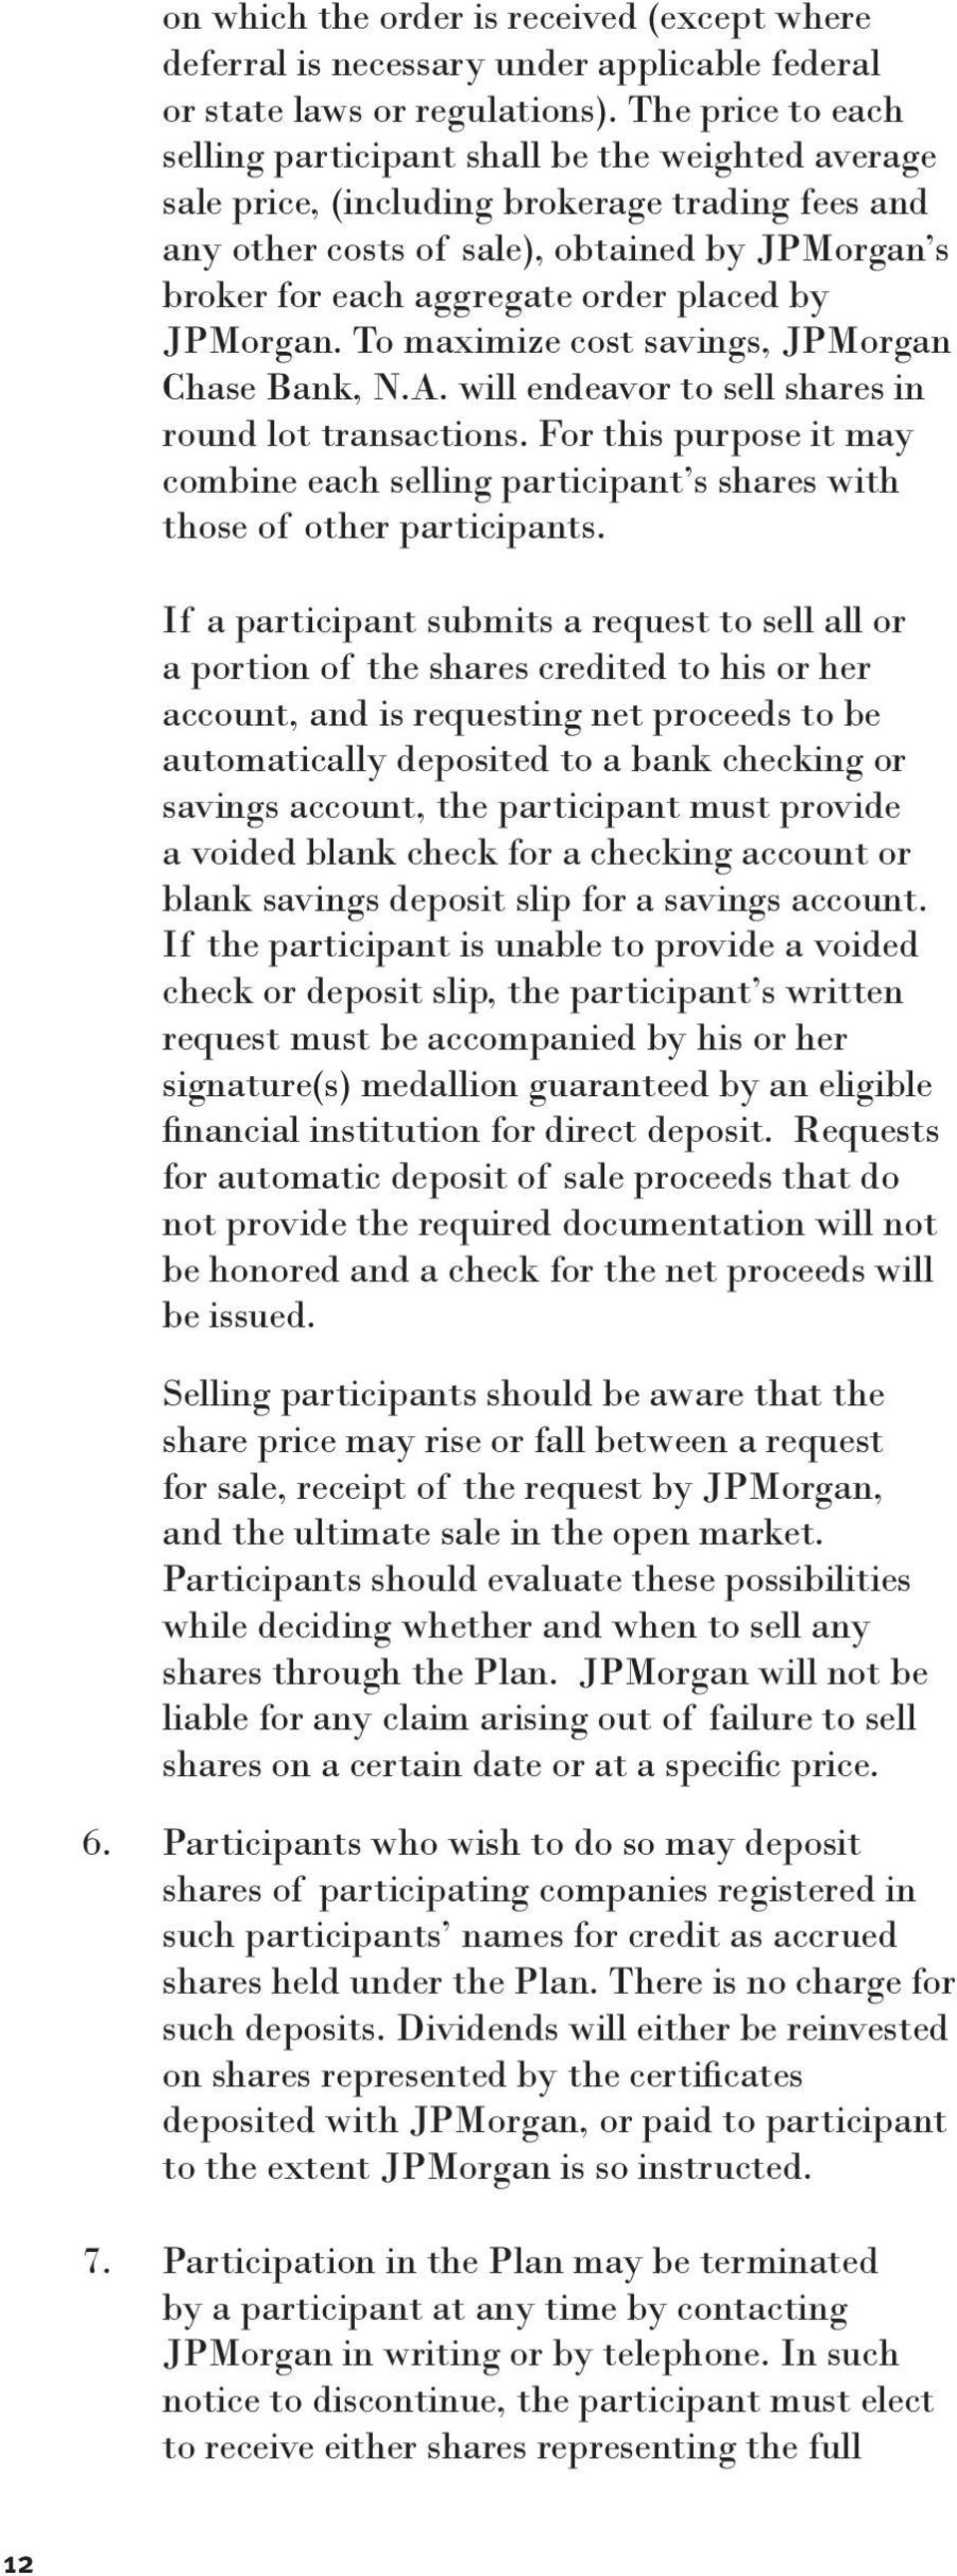 placed by JPMorgan. To maximize cost savings, JPMorgan Chase Bank, N.A. will endeavor to sell shares in round lot transactions.